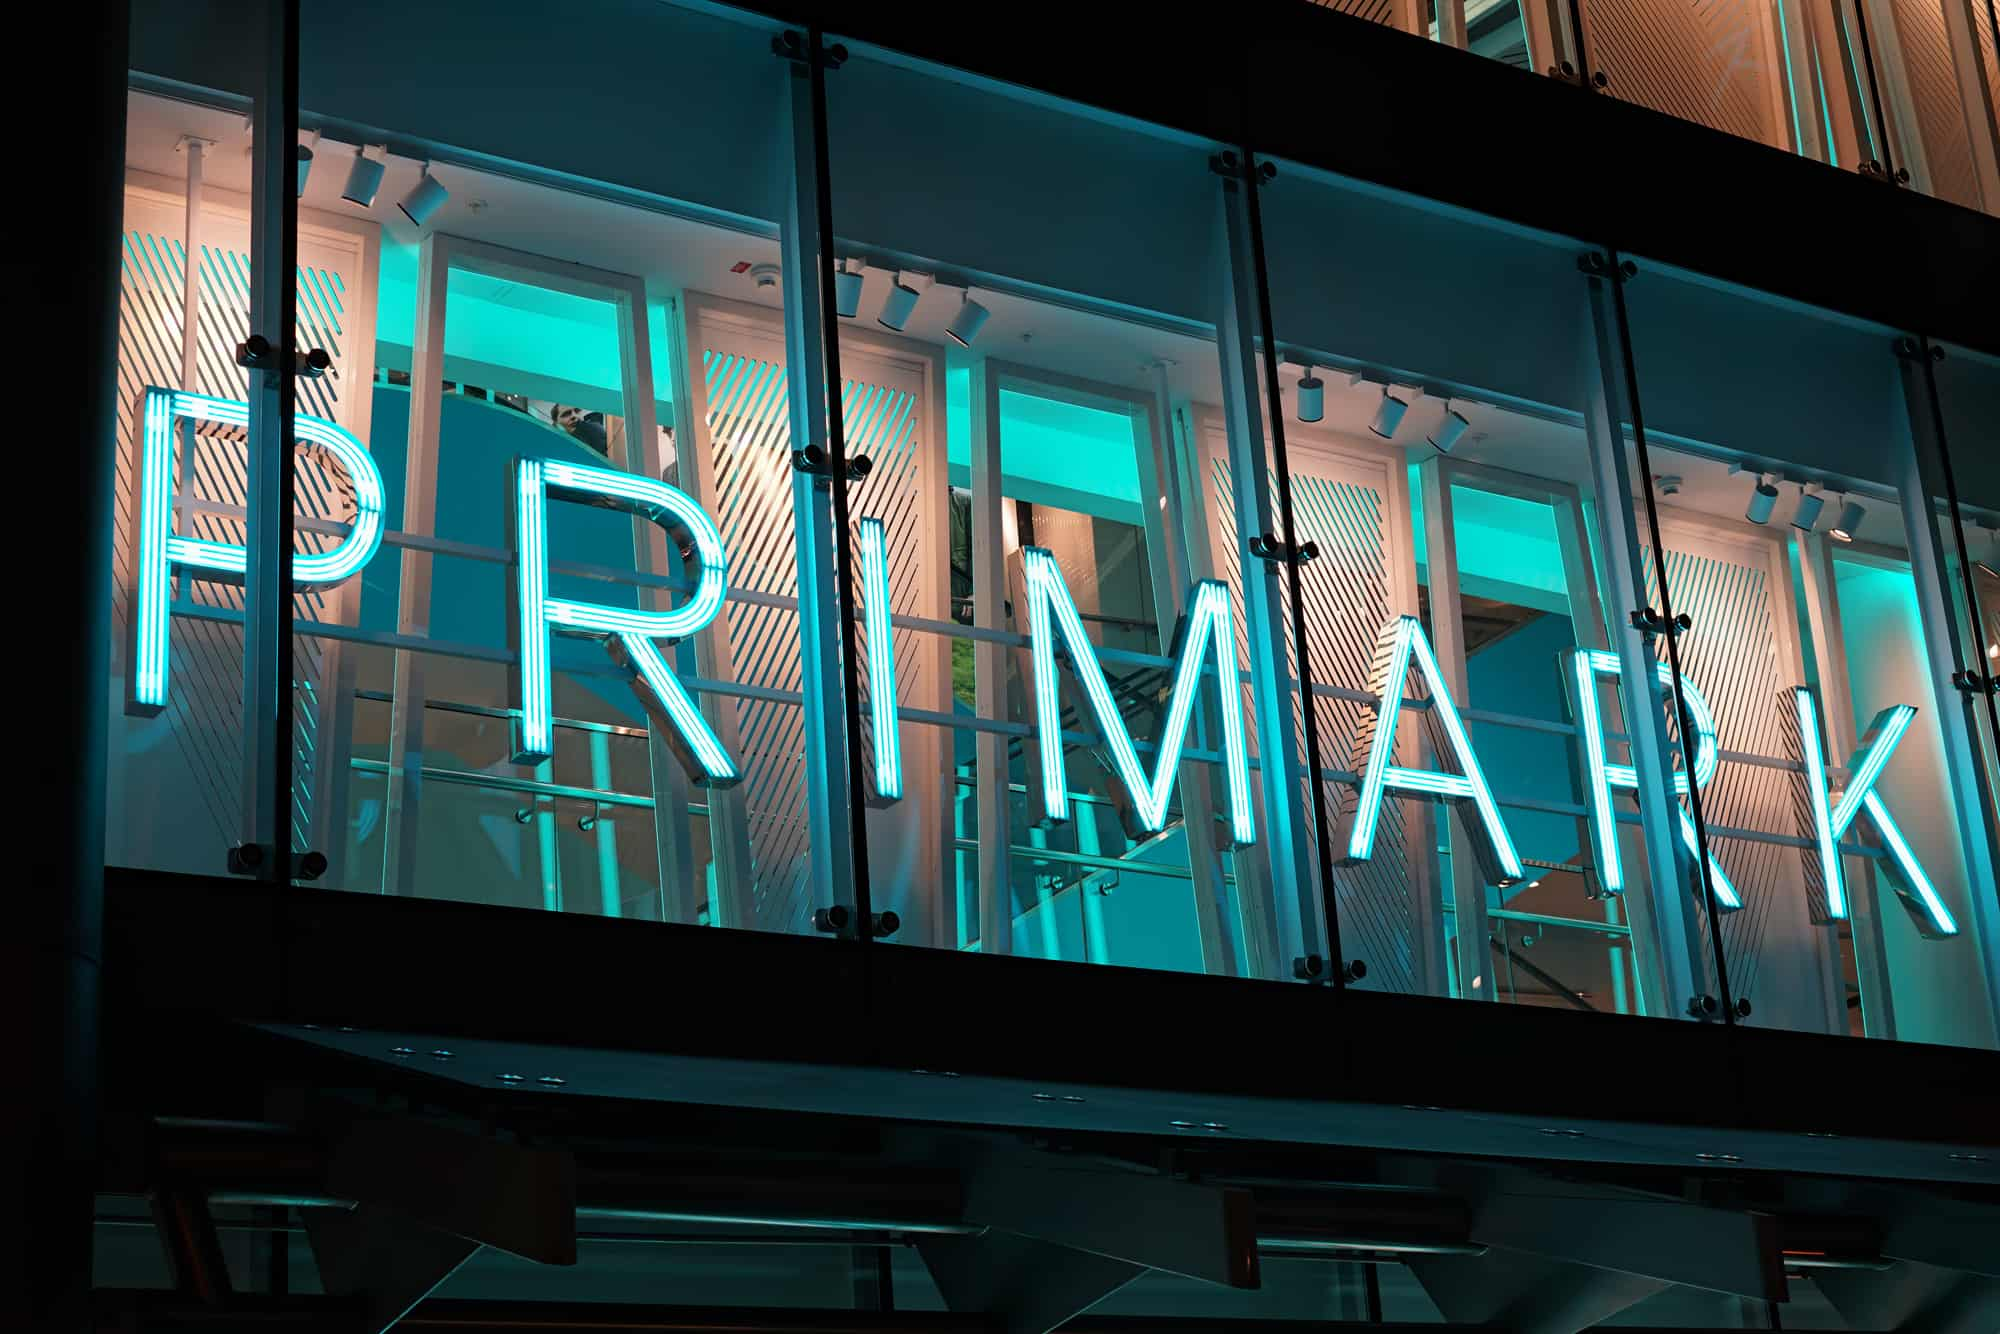 Primark reports 4% growth despite high street malaise